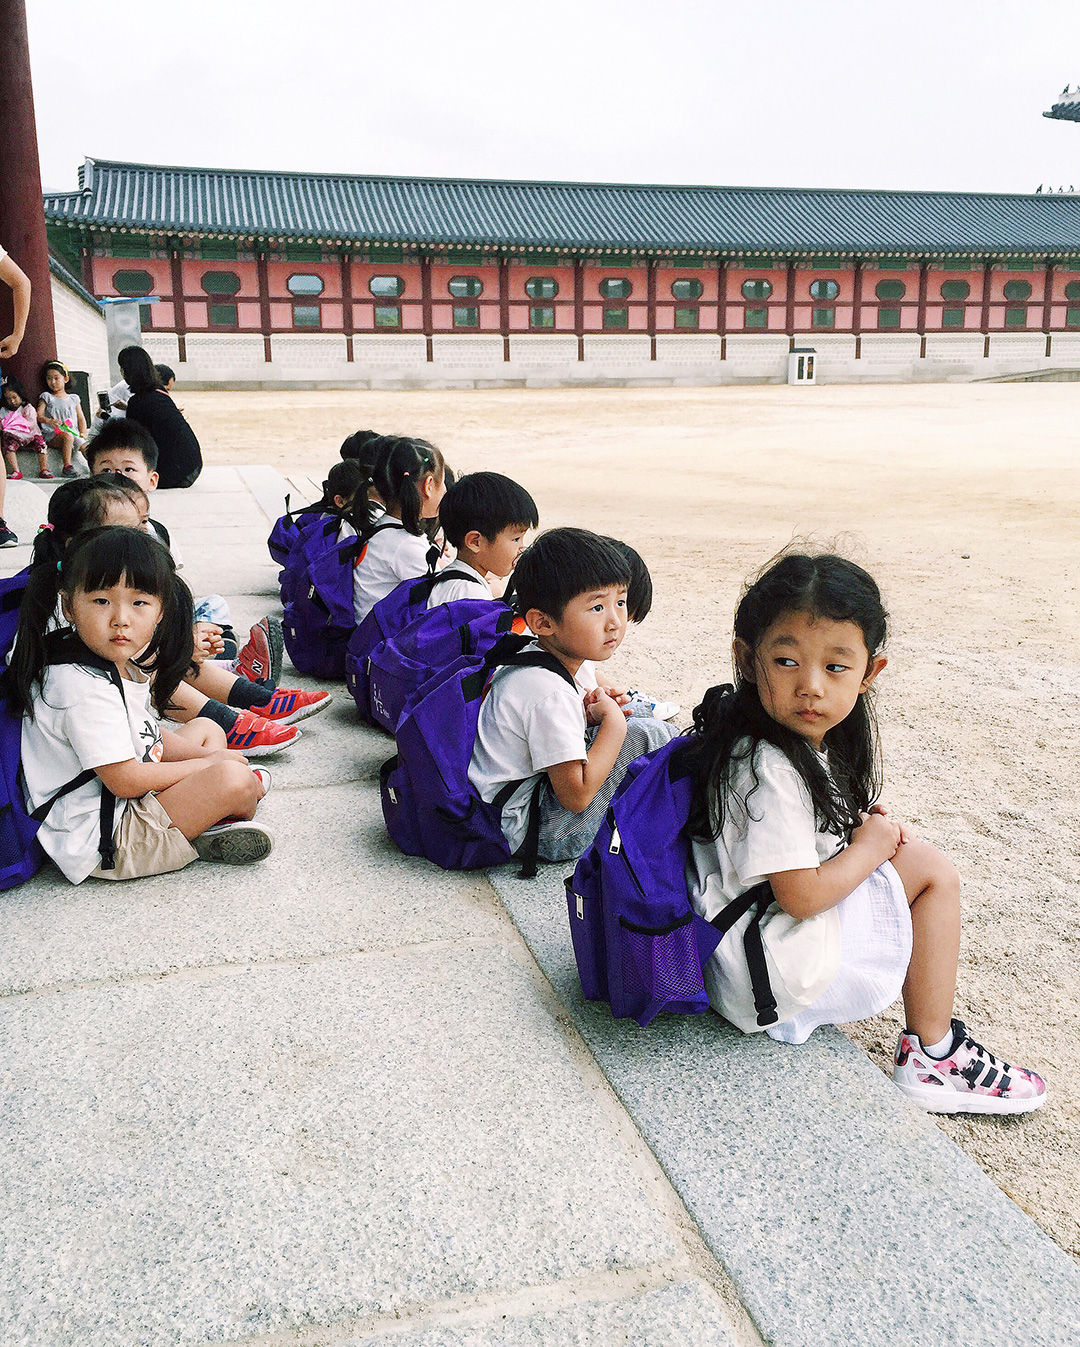 The cutest little preschoolers on their field trip to the palace.